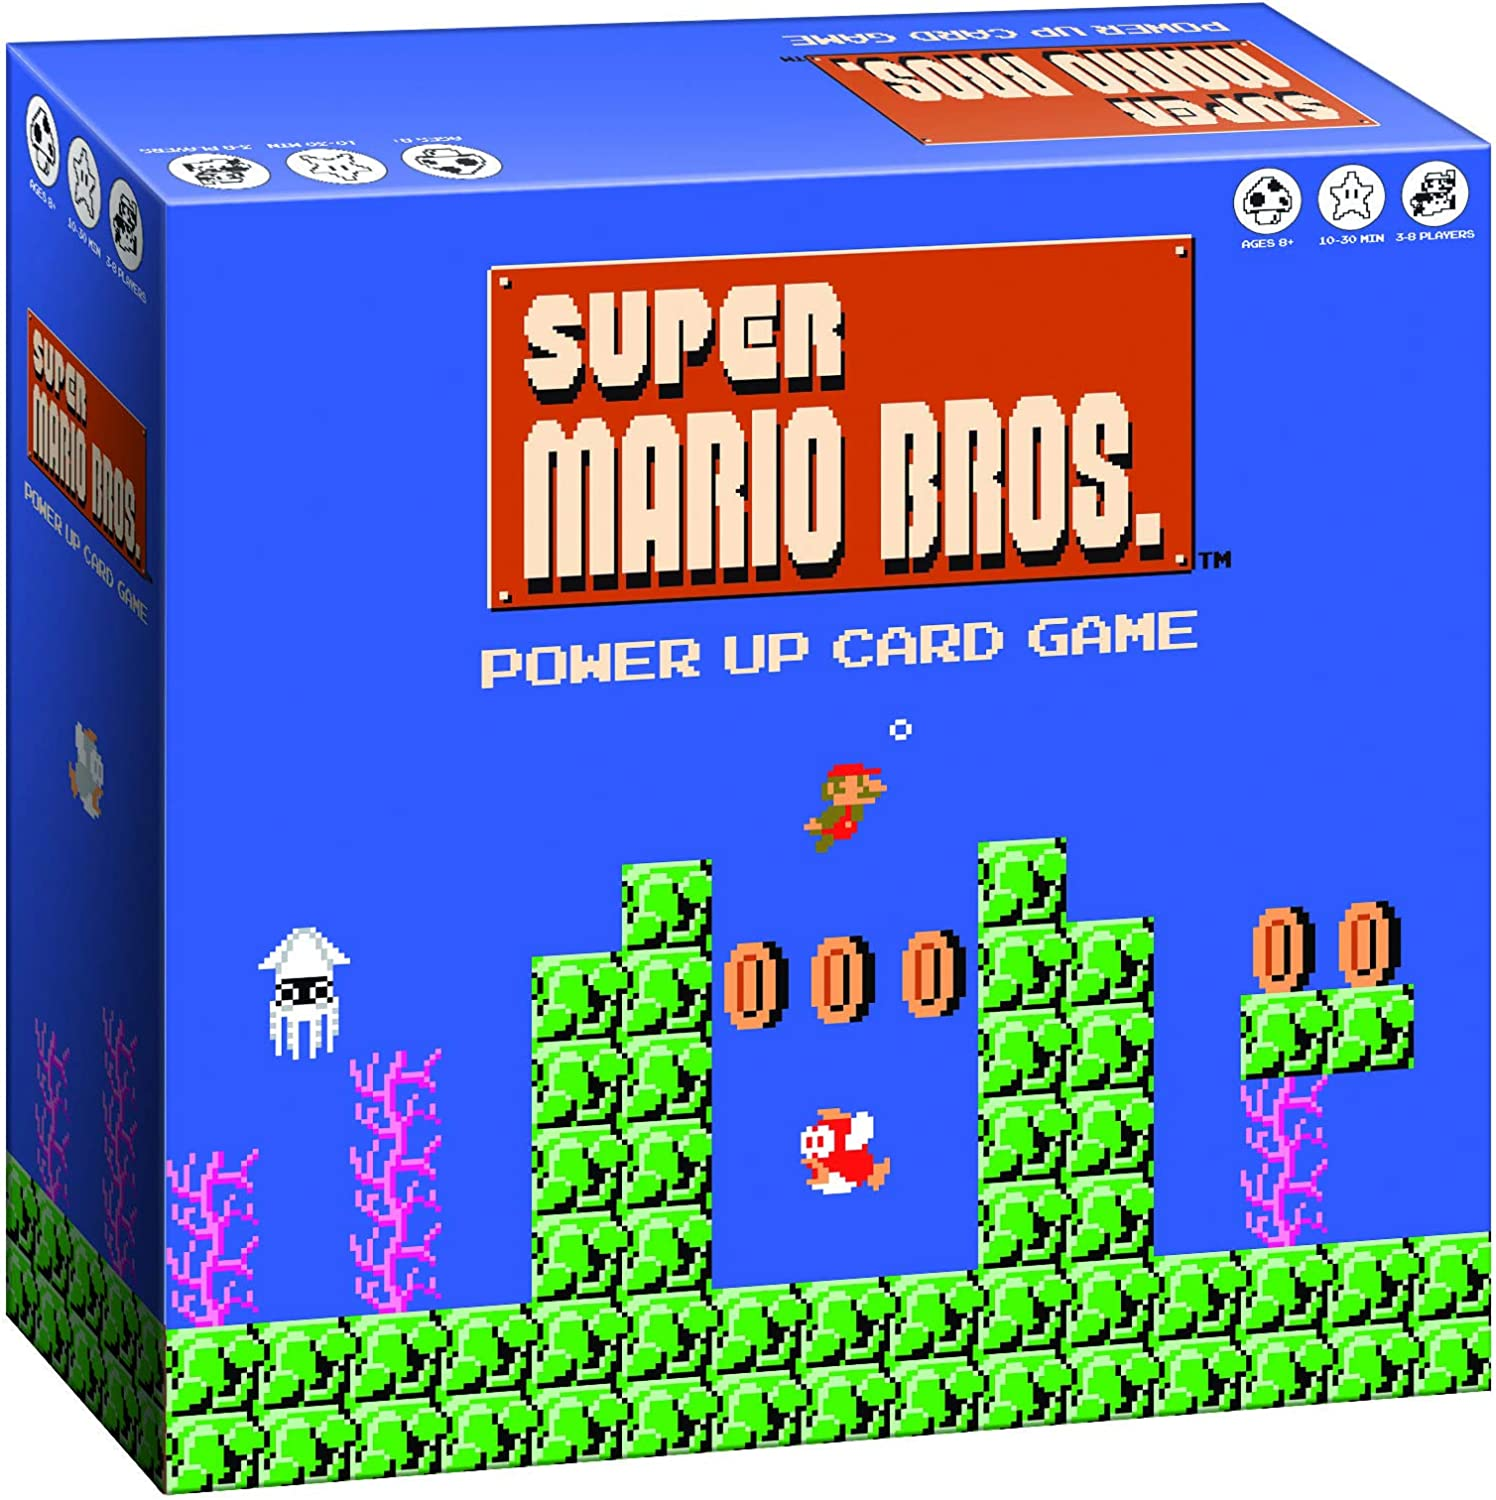 Amazon Com Super Mario Bros Power Up Card Game Super Mario Brothers Video Game Nintendo Nes Artwork Fast Paced Card Games Easy To Learn And Quick To Play Fun